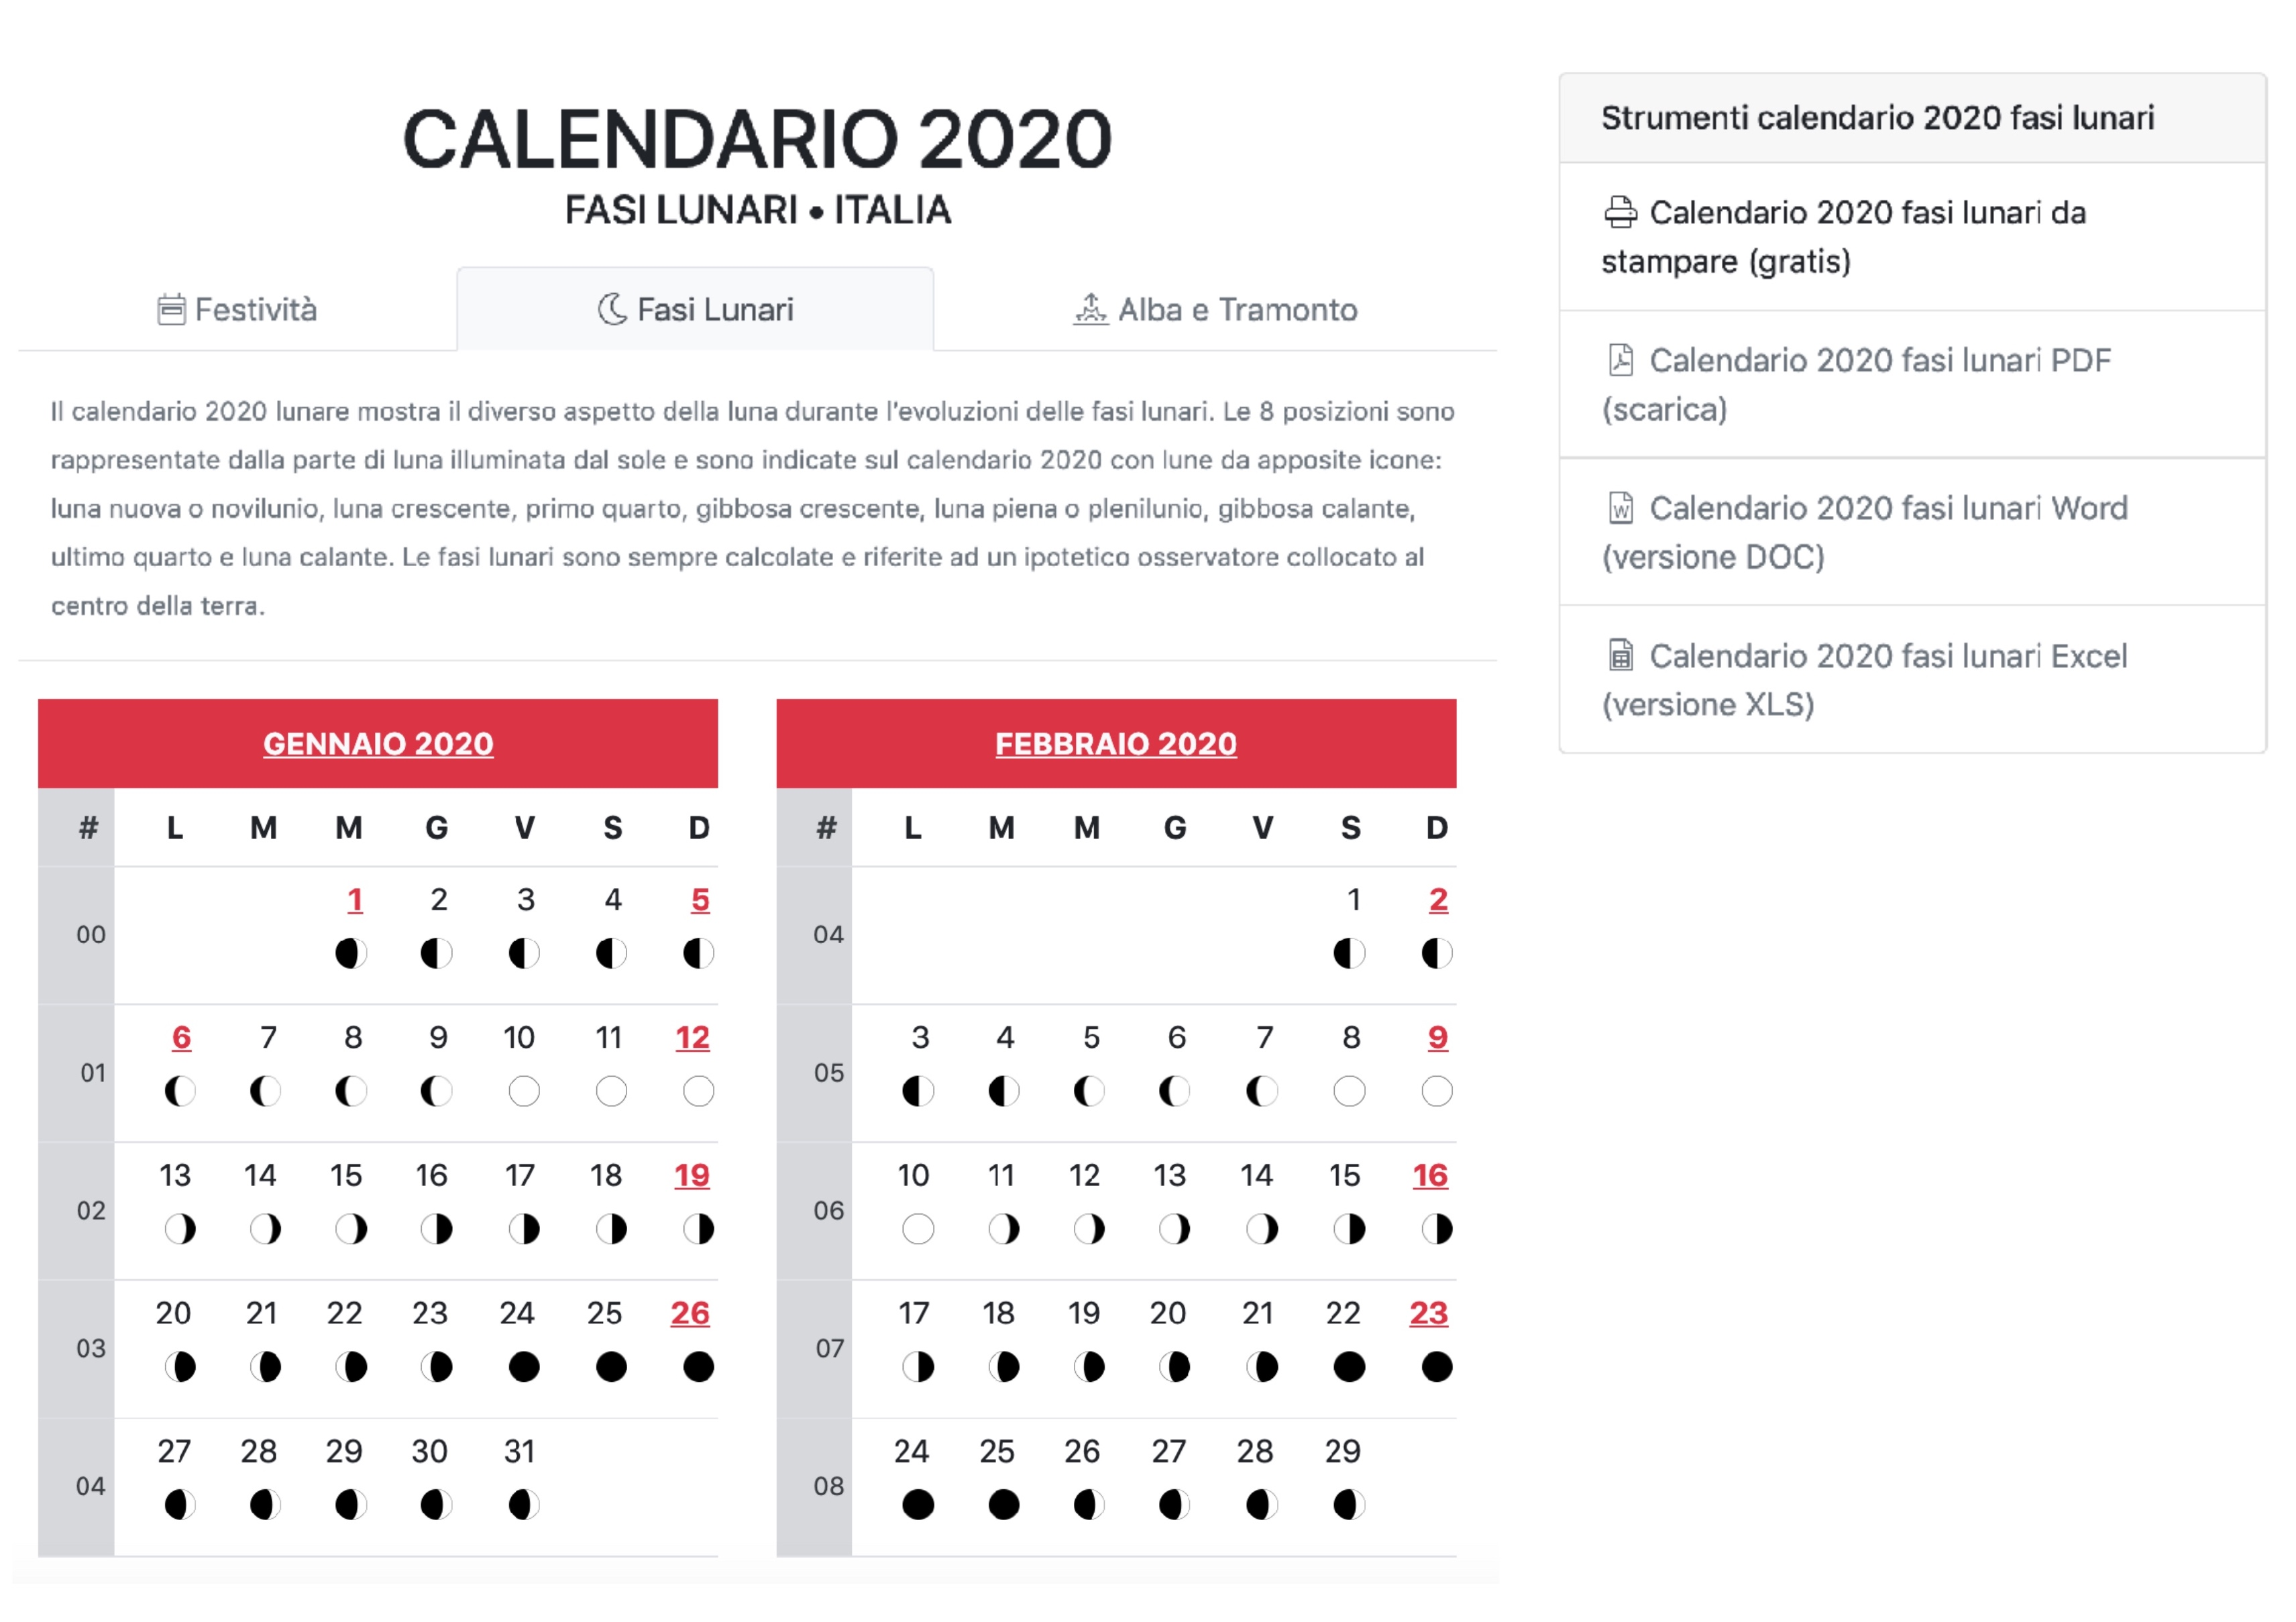 Calendario Lunare 2020 Parto.Fasi Lunari Piu Vicine Con Calendario 2020 Close Up